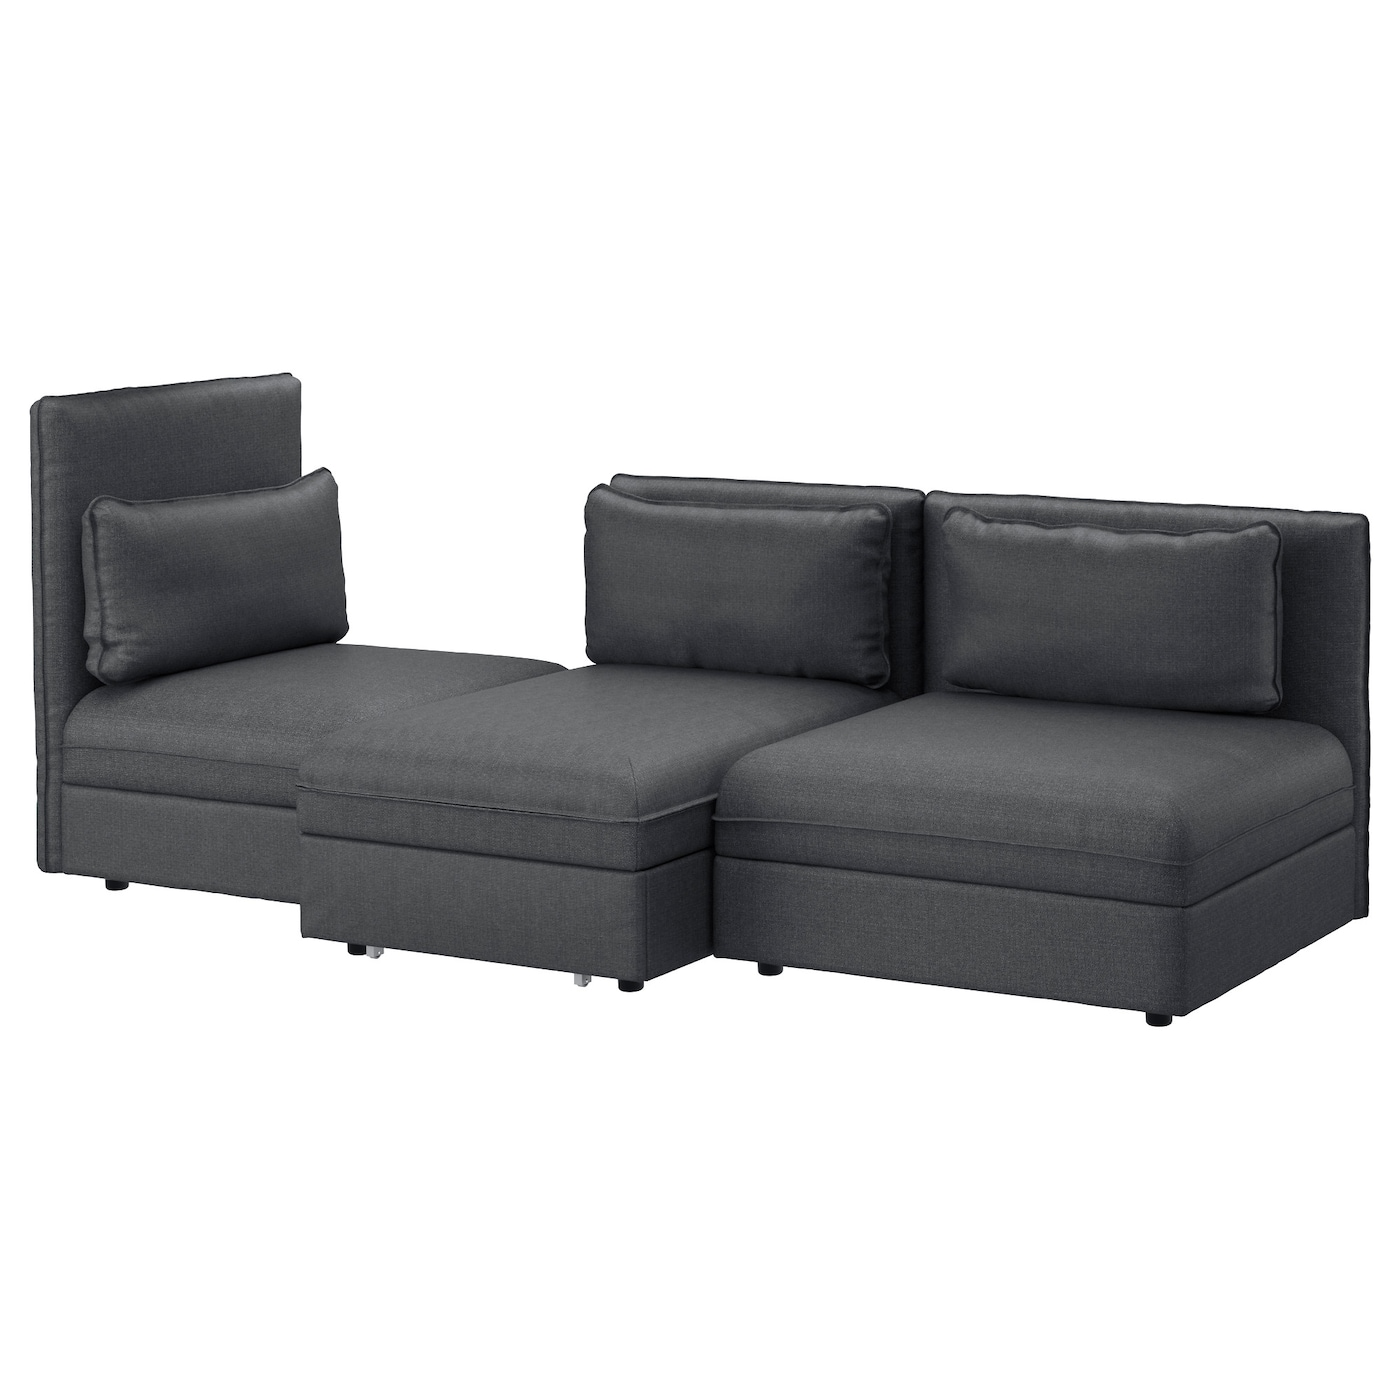 Sofas armchairs ikea for 90 cm sofa bed